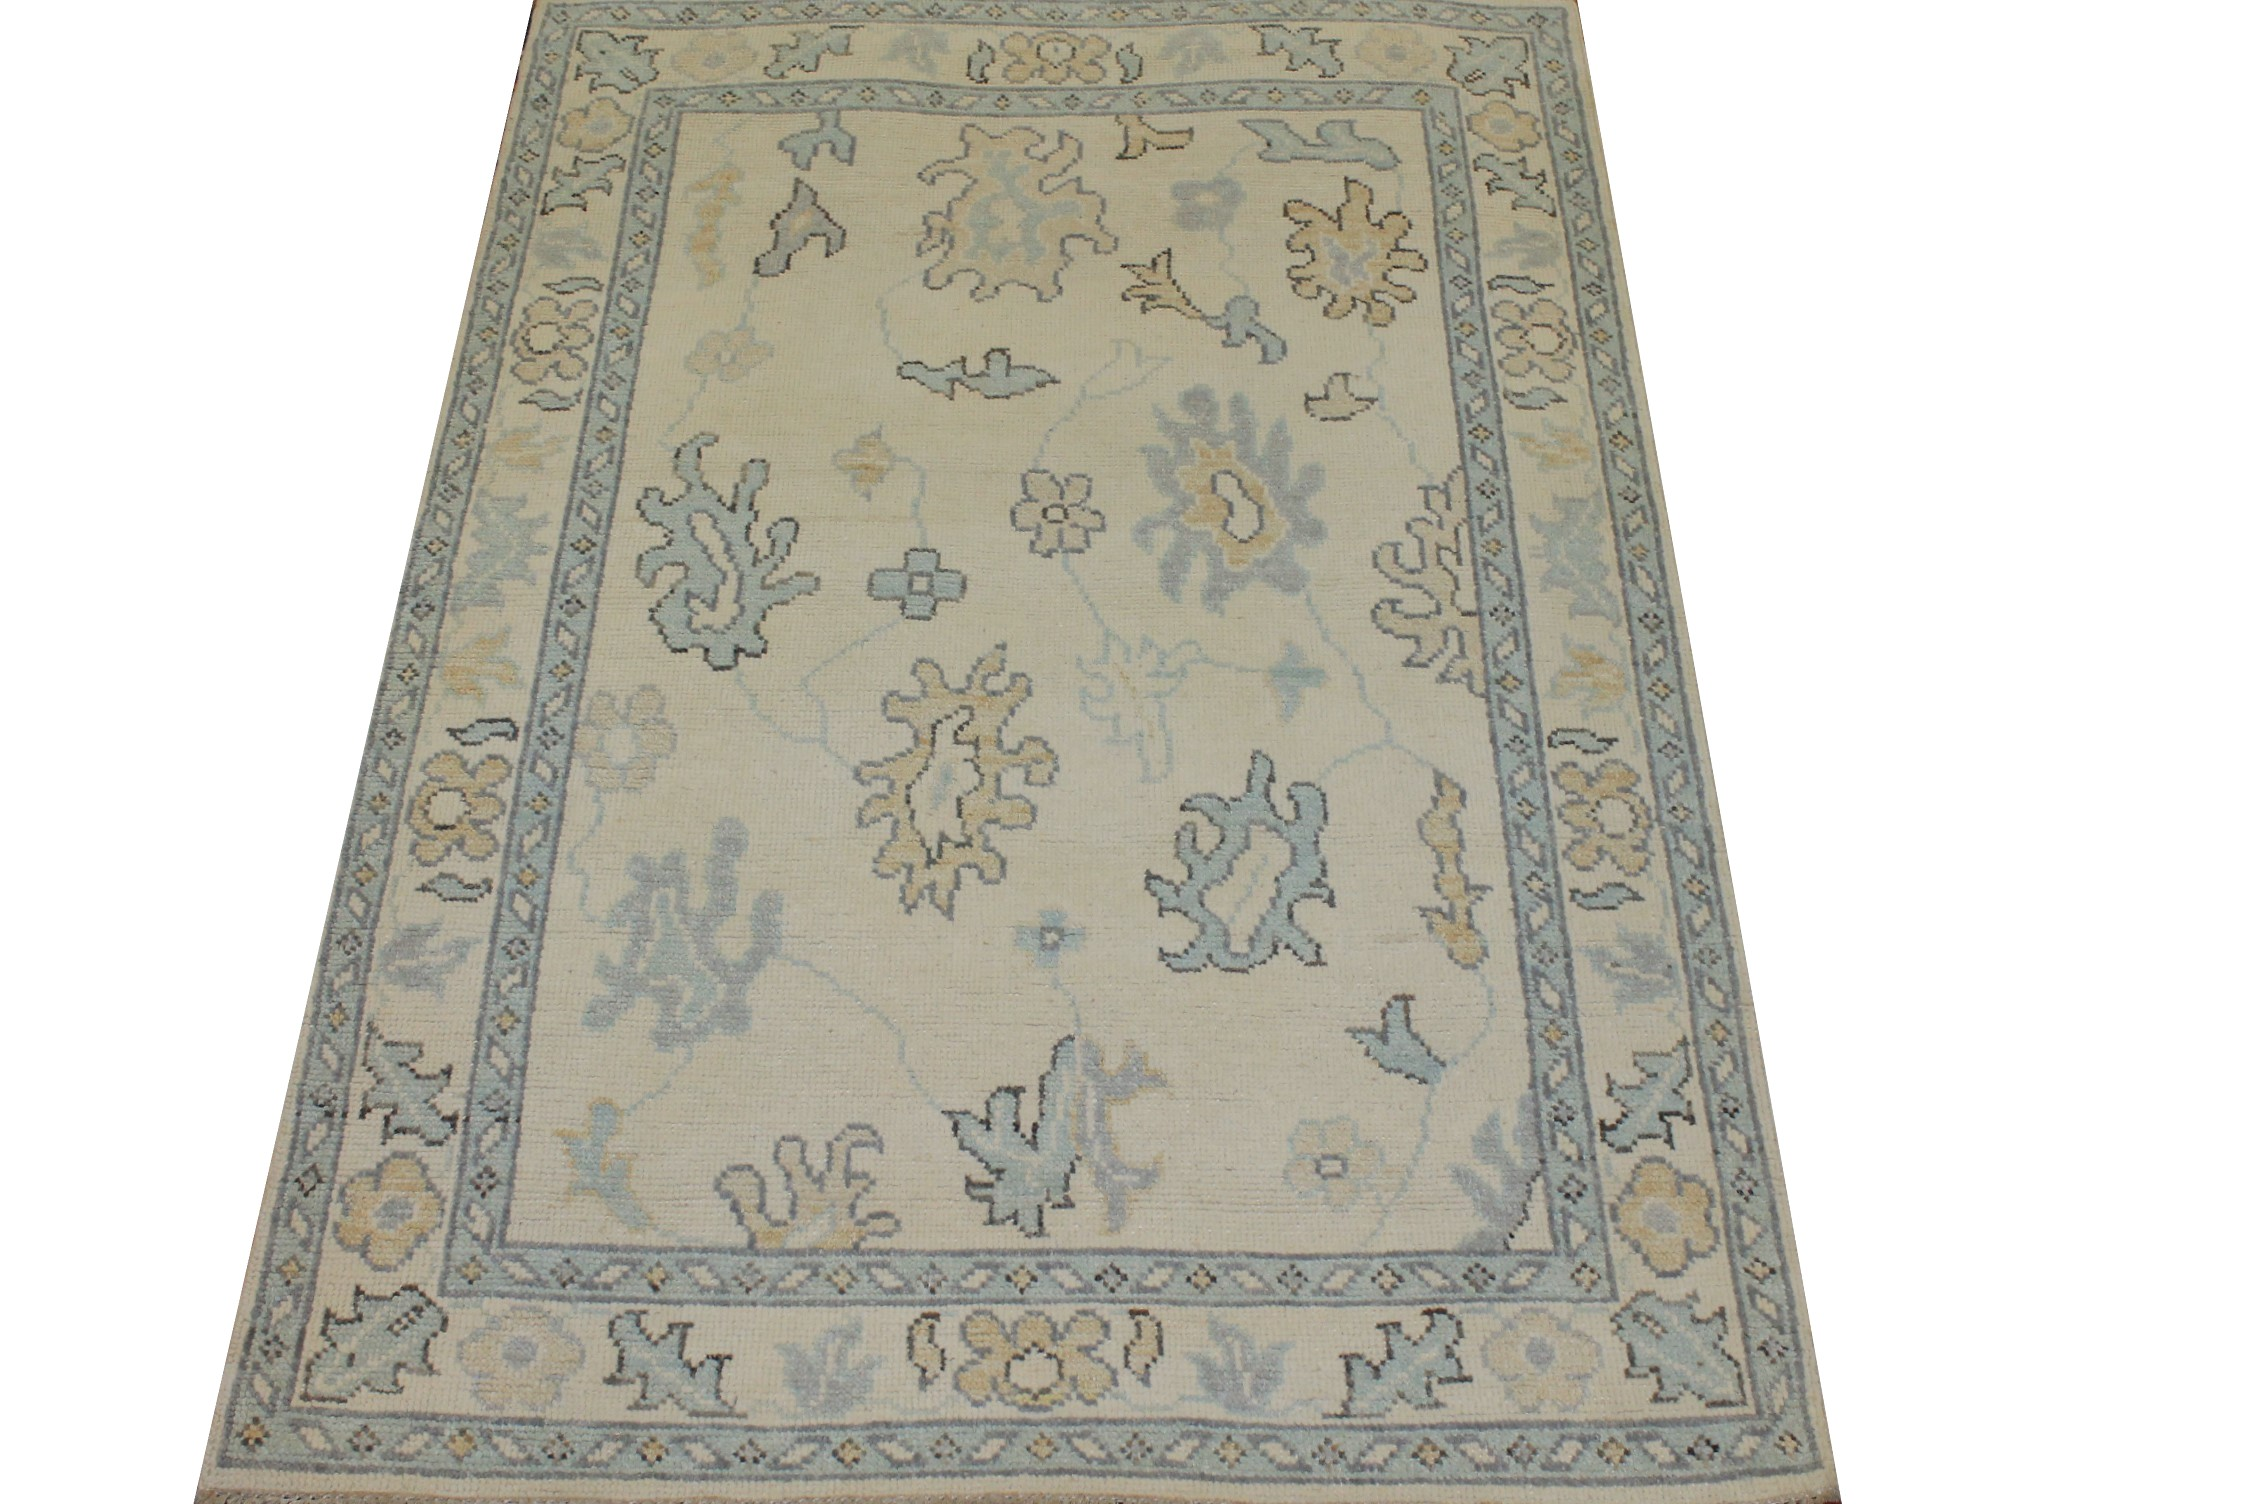 4x6 Oushak Hand Knotted Wool Area Rug - MR025329